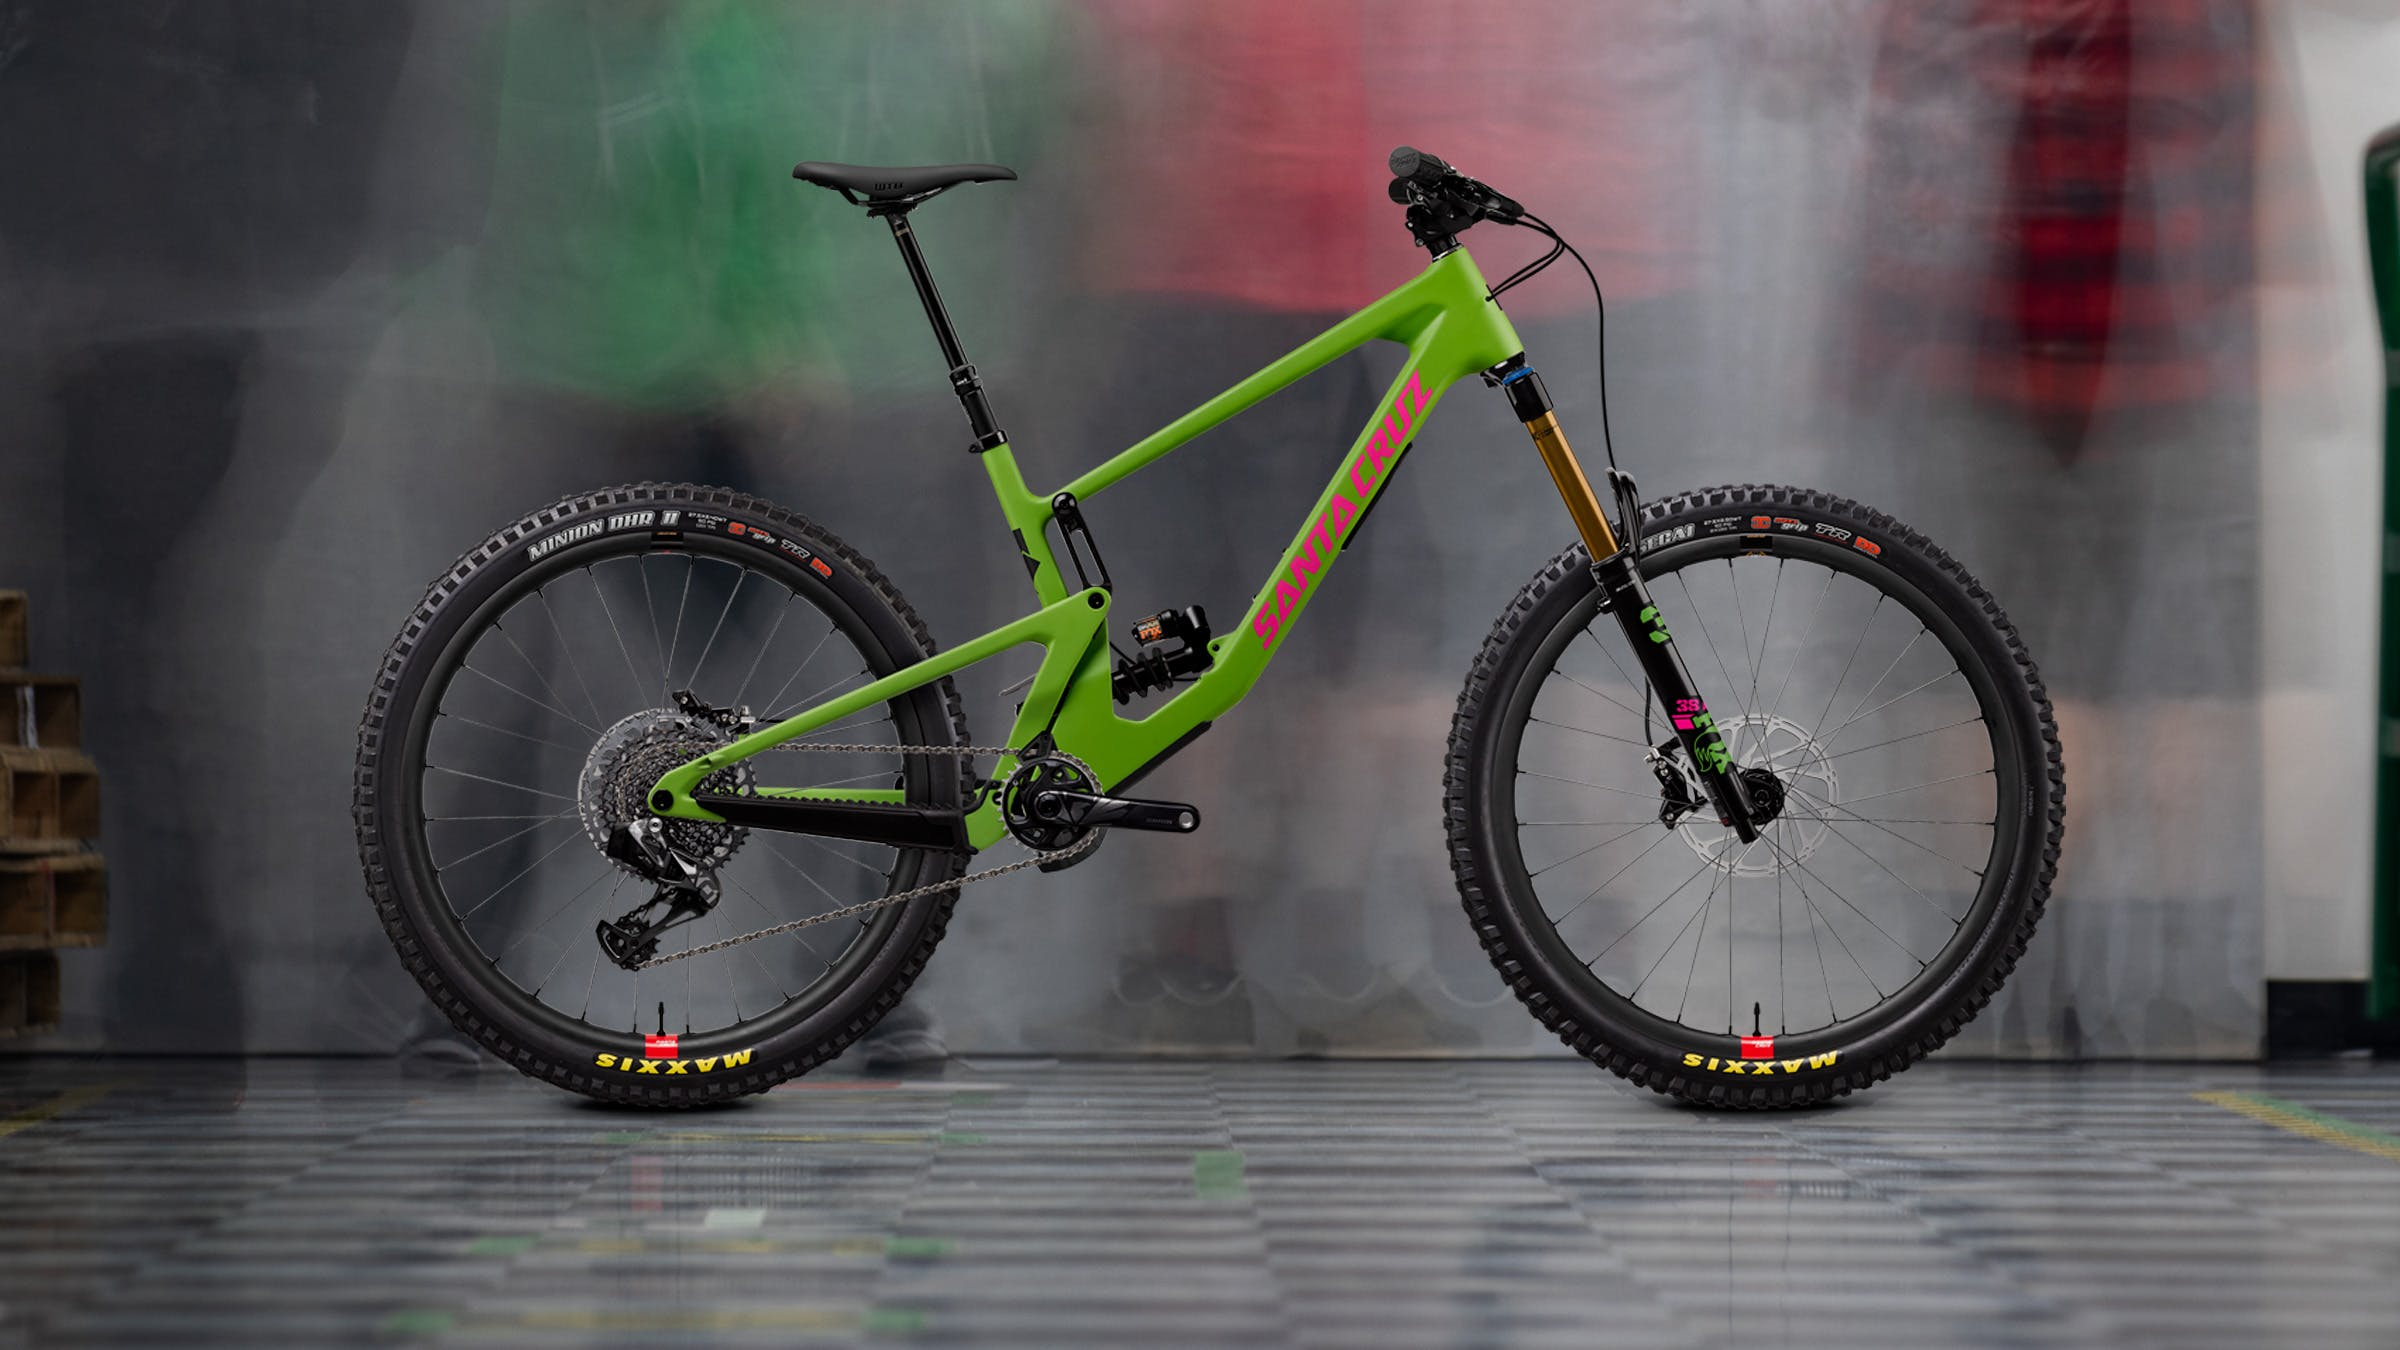 Nomad X01 AXS Reserve in Green